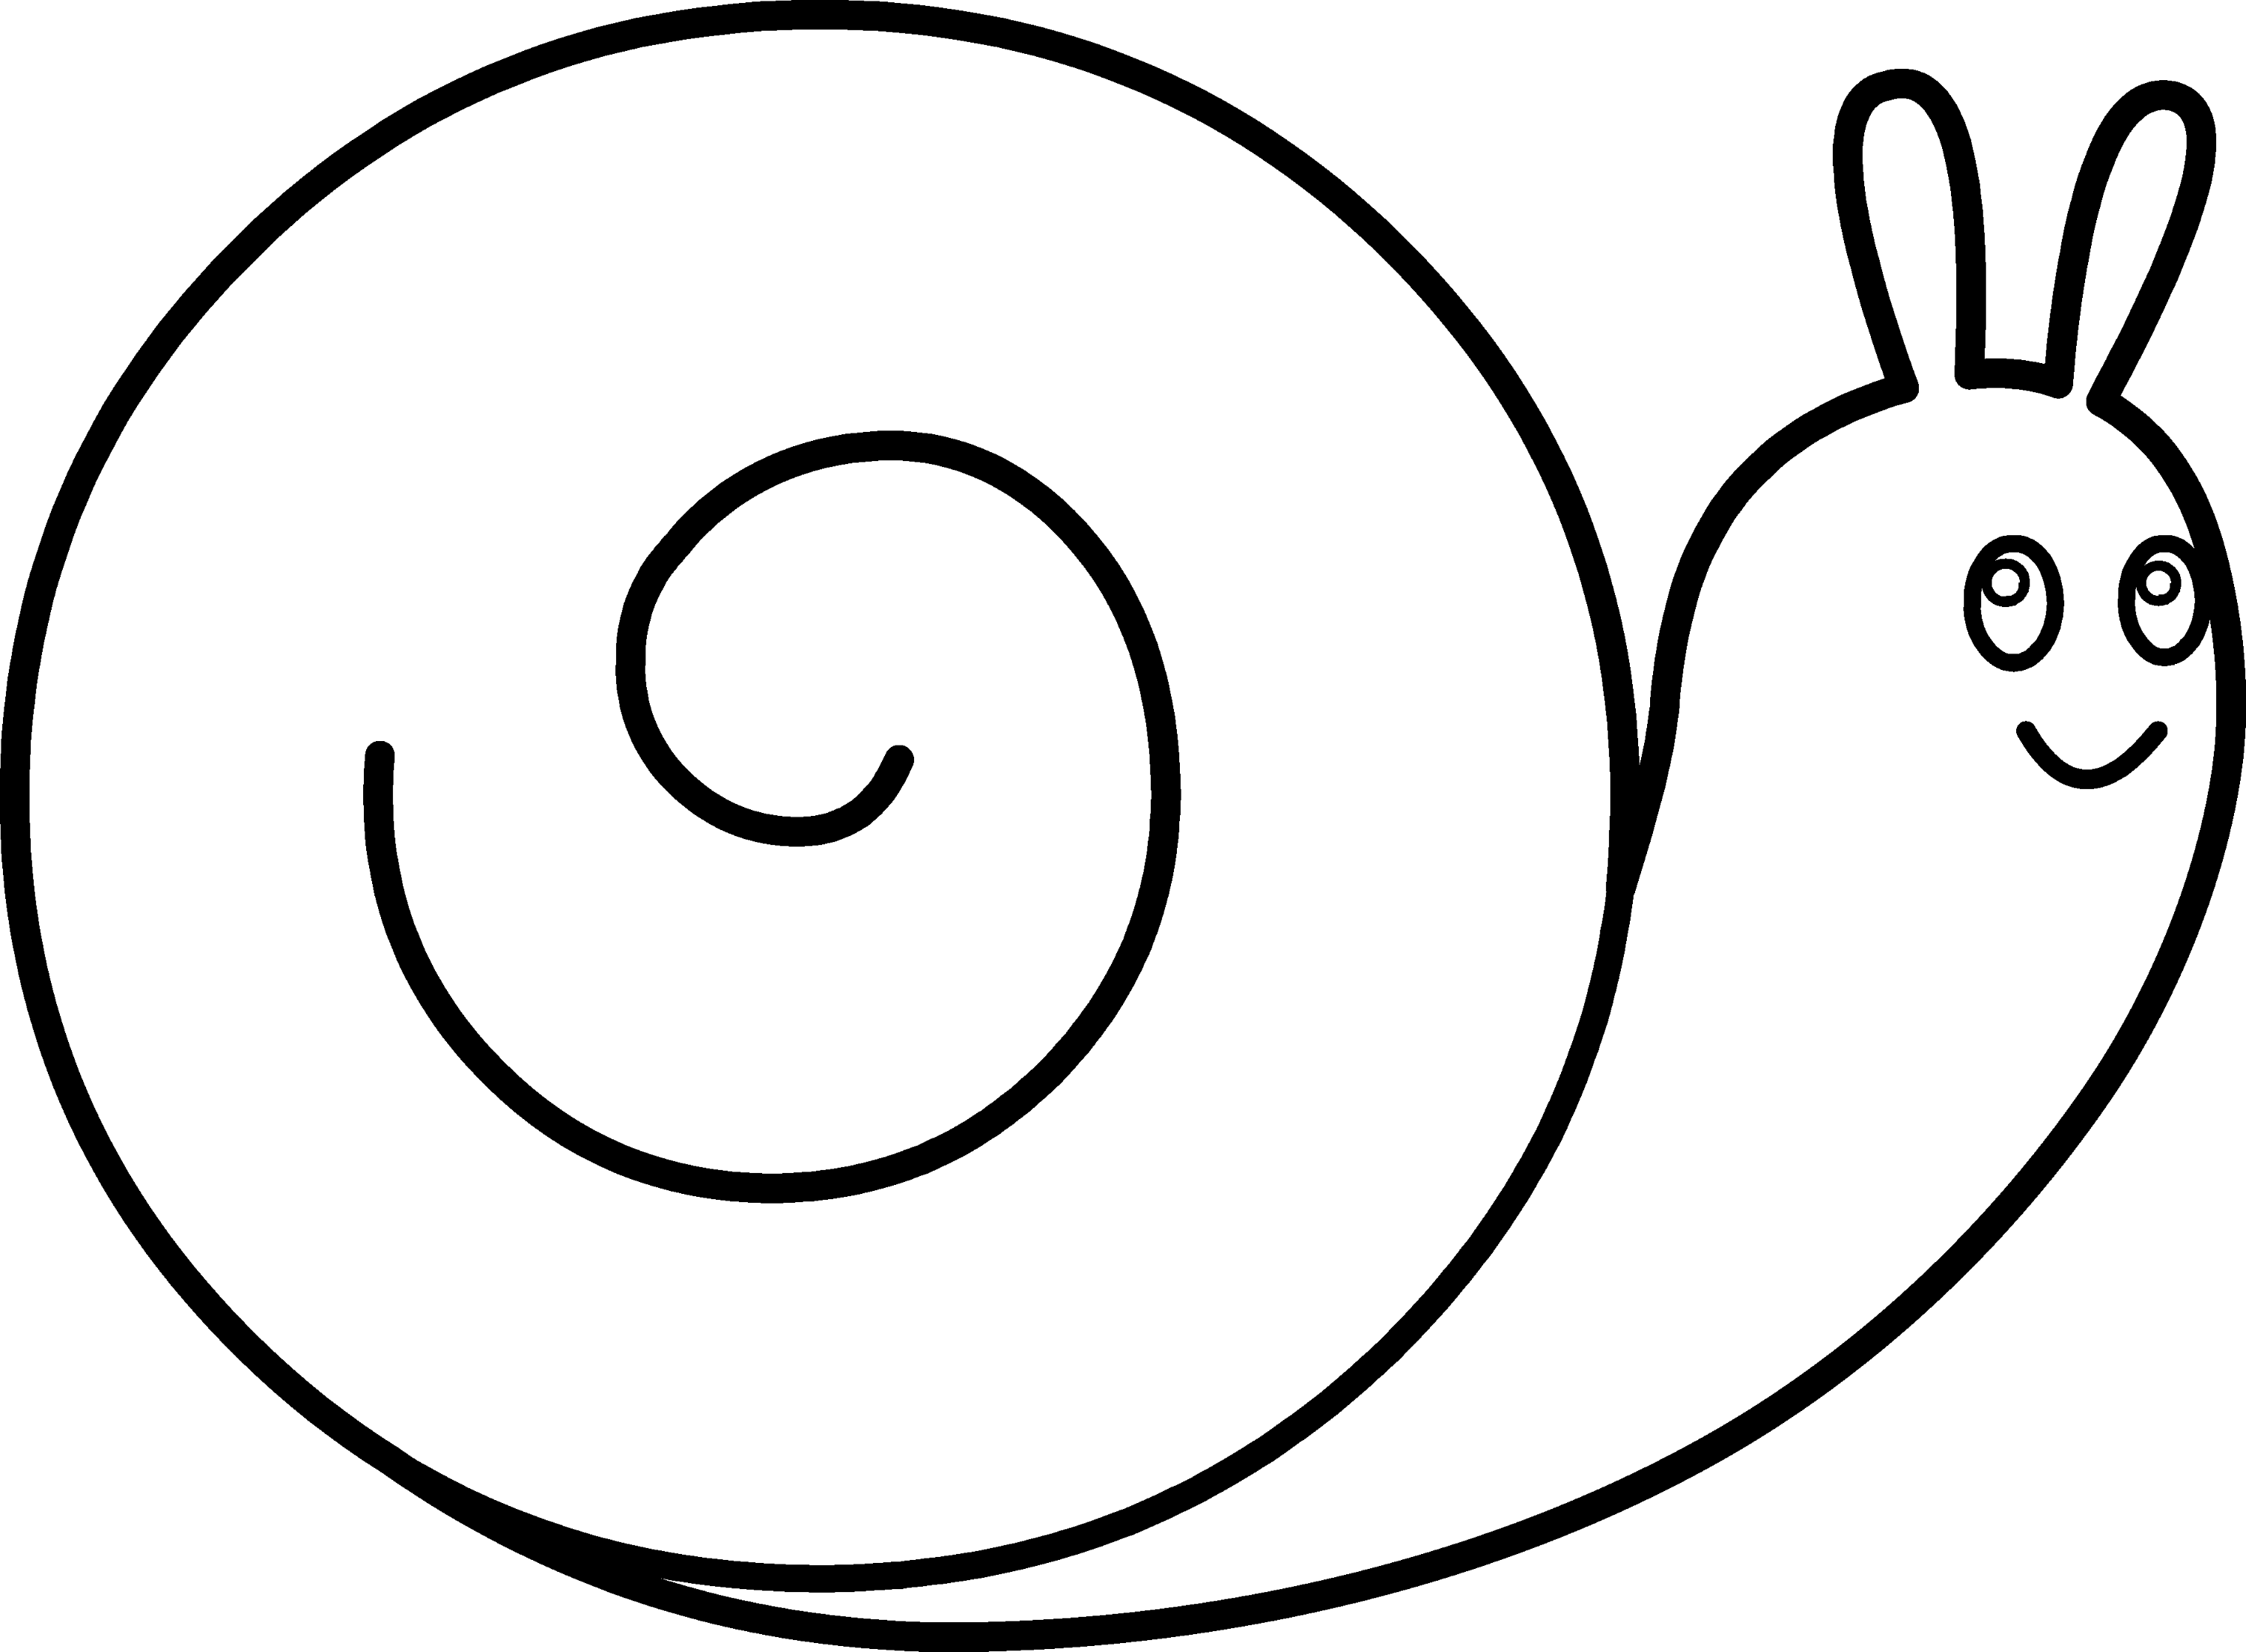 snail coloring pages printable snail printable coloring sheet for